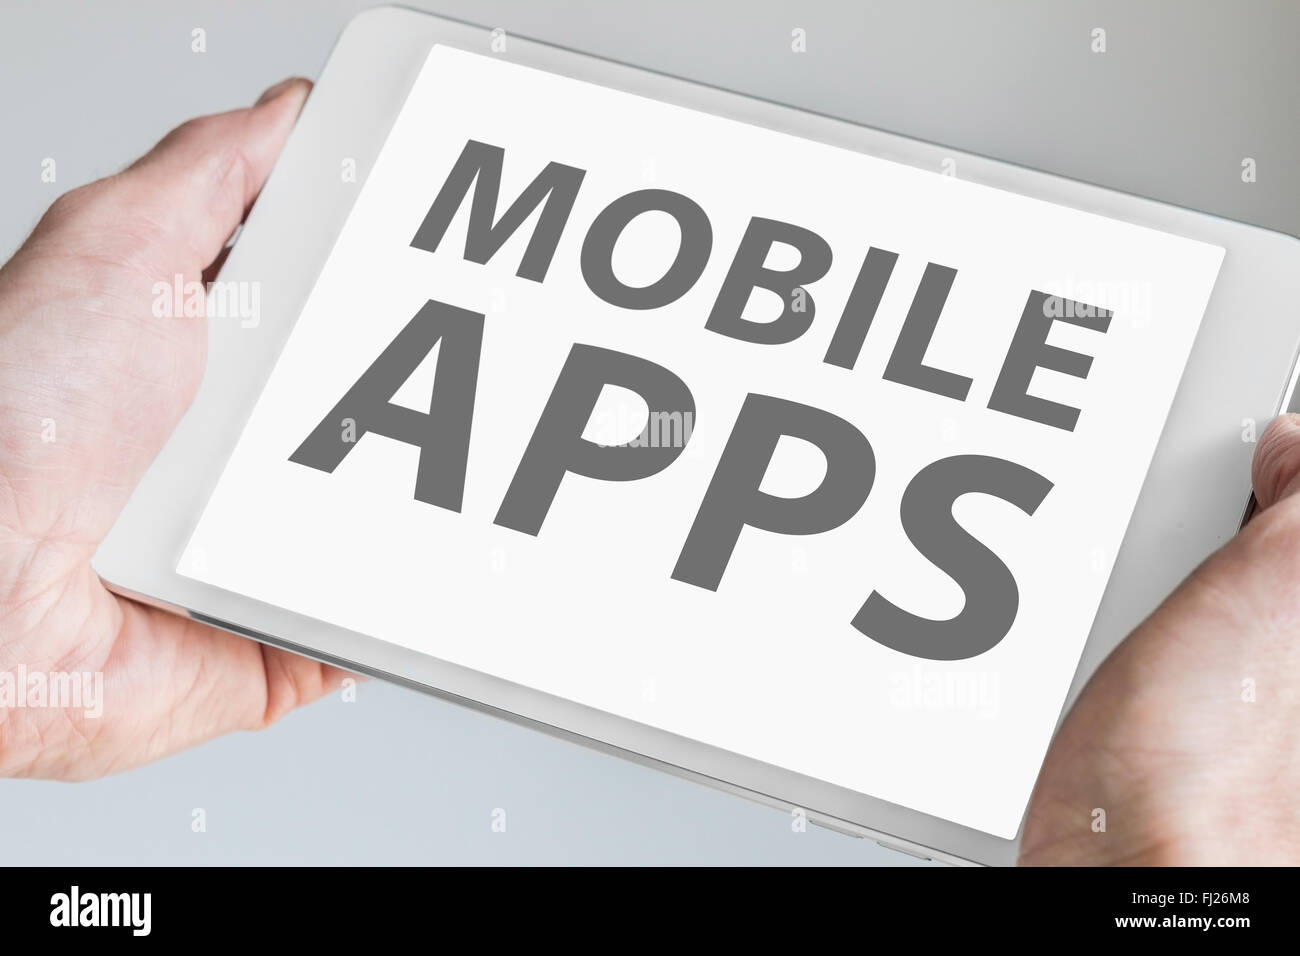 Mobile apps text displayed on touchscreen of modern tablet or smart device. Concept for development of applications - Stock Image